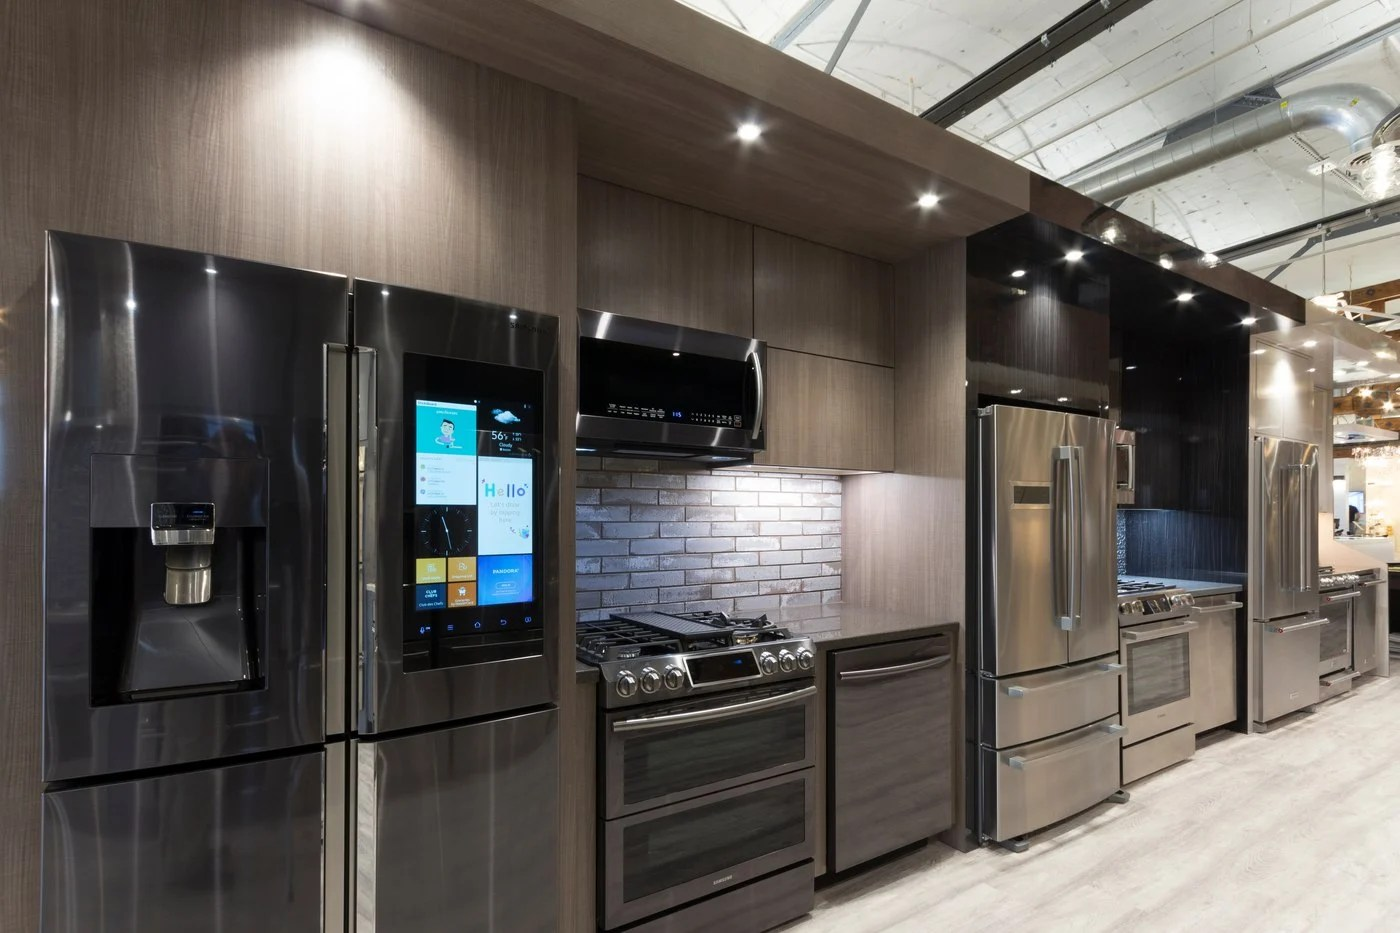 kitchen appliance suite hanging light best stainless steel packages reviews ratings yaleappliance dorchester 20 2